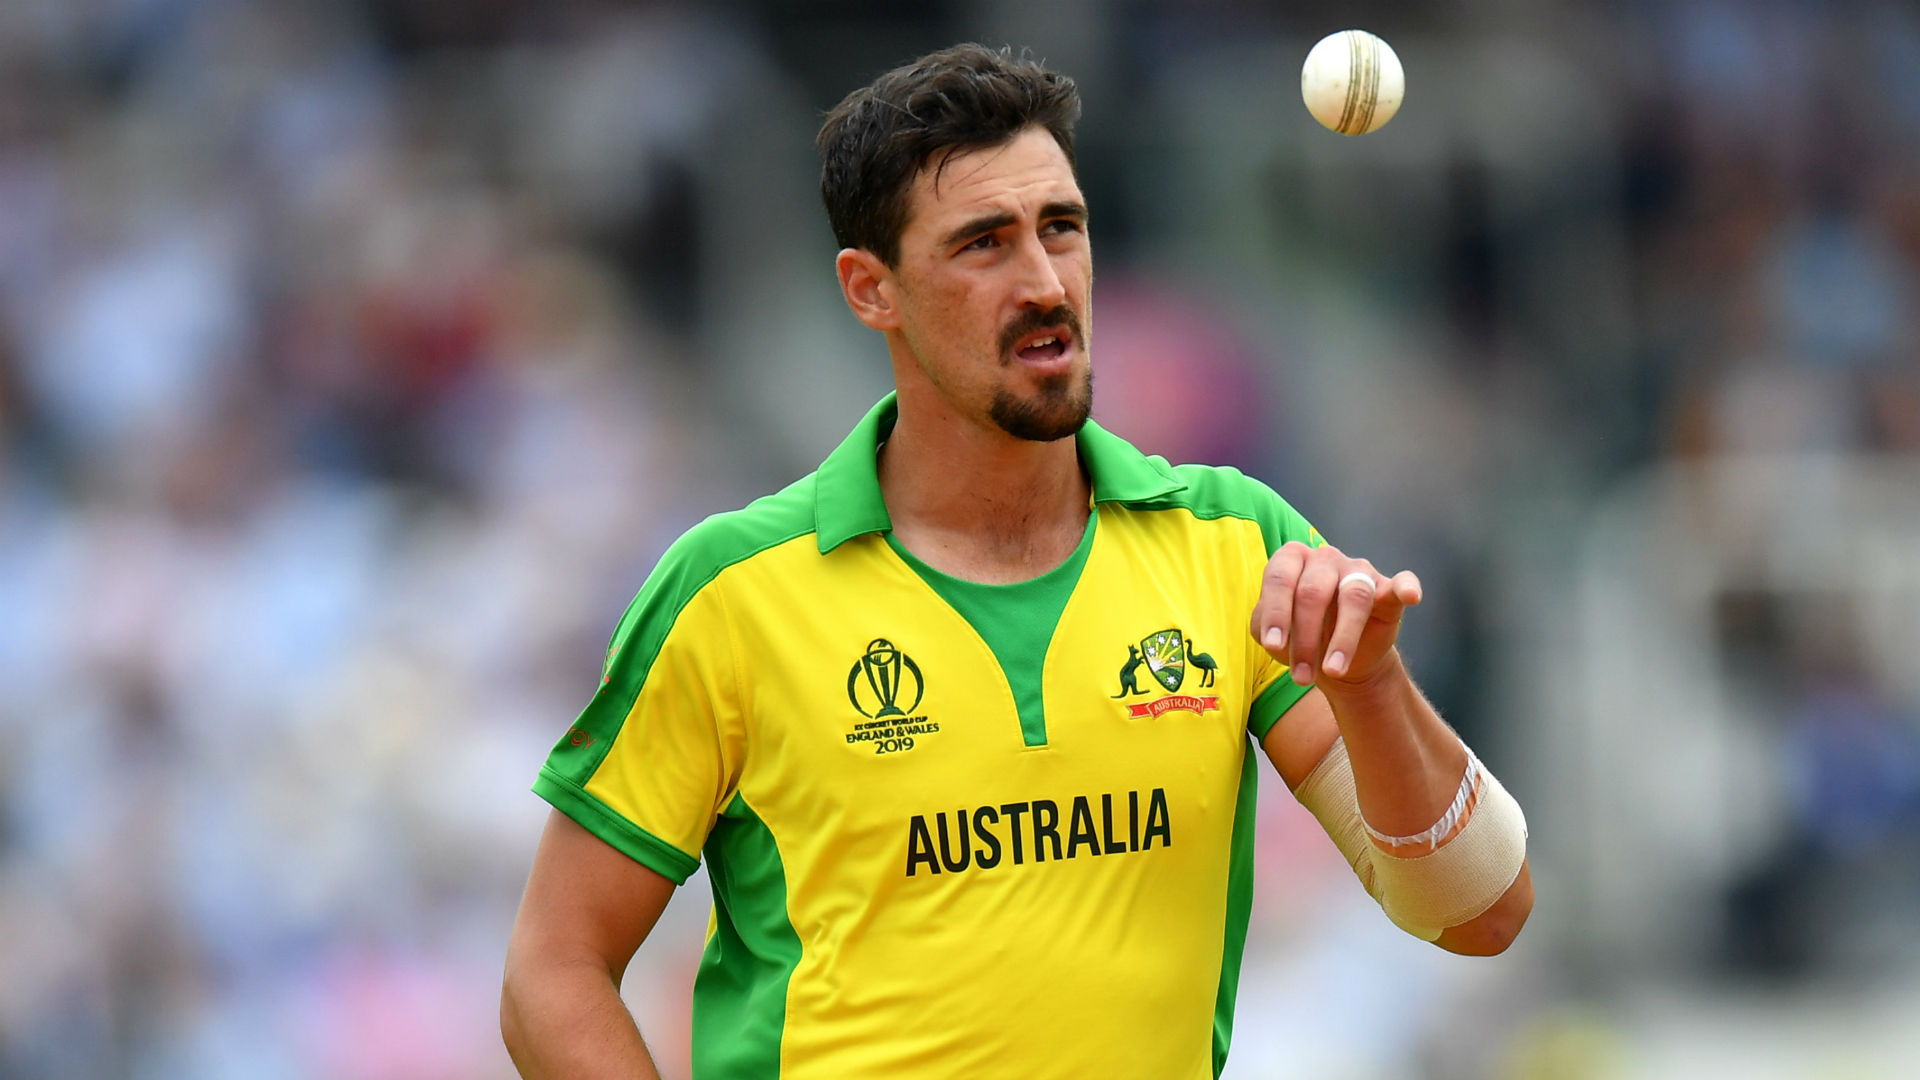 Mitchell Starc produced one of the great Cricket World Cup deliveries as Australia demonstrated why they can challenge again in 2019.